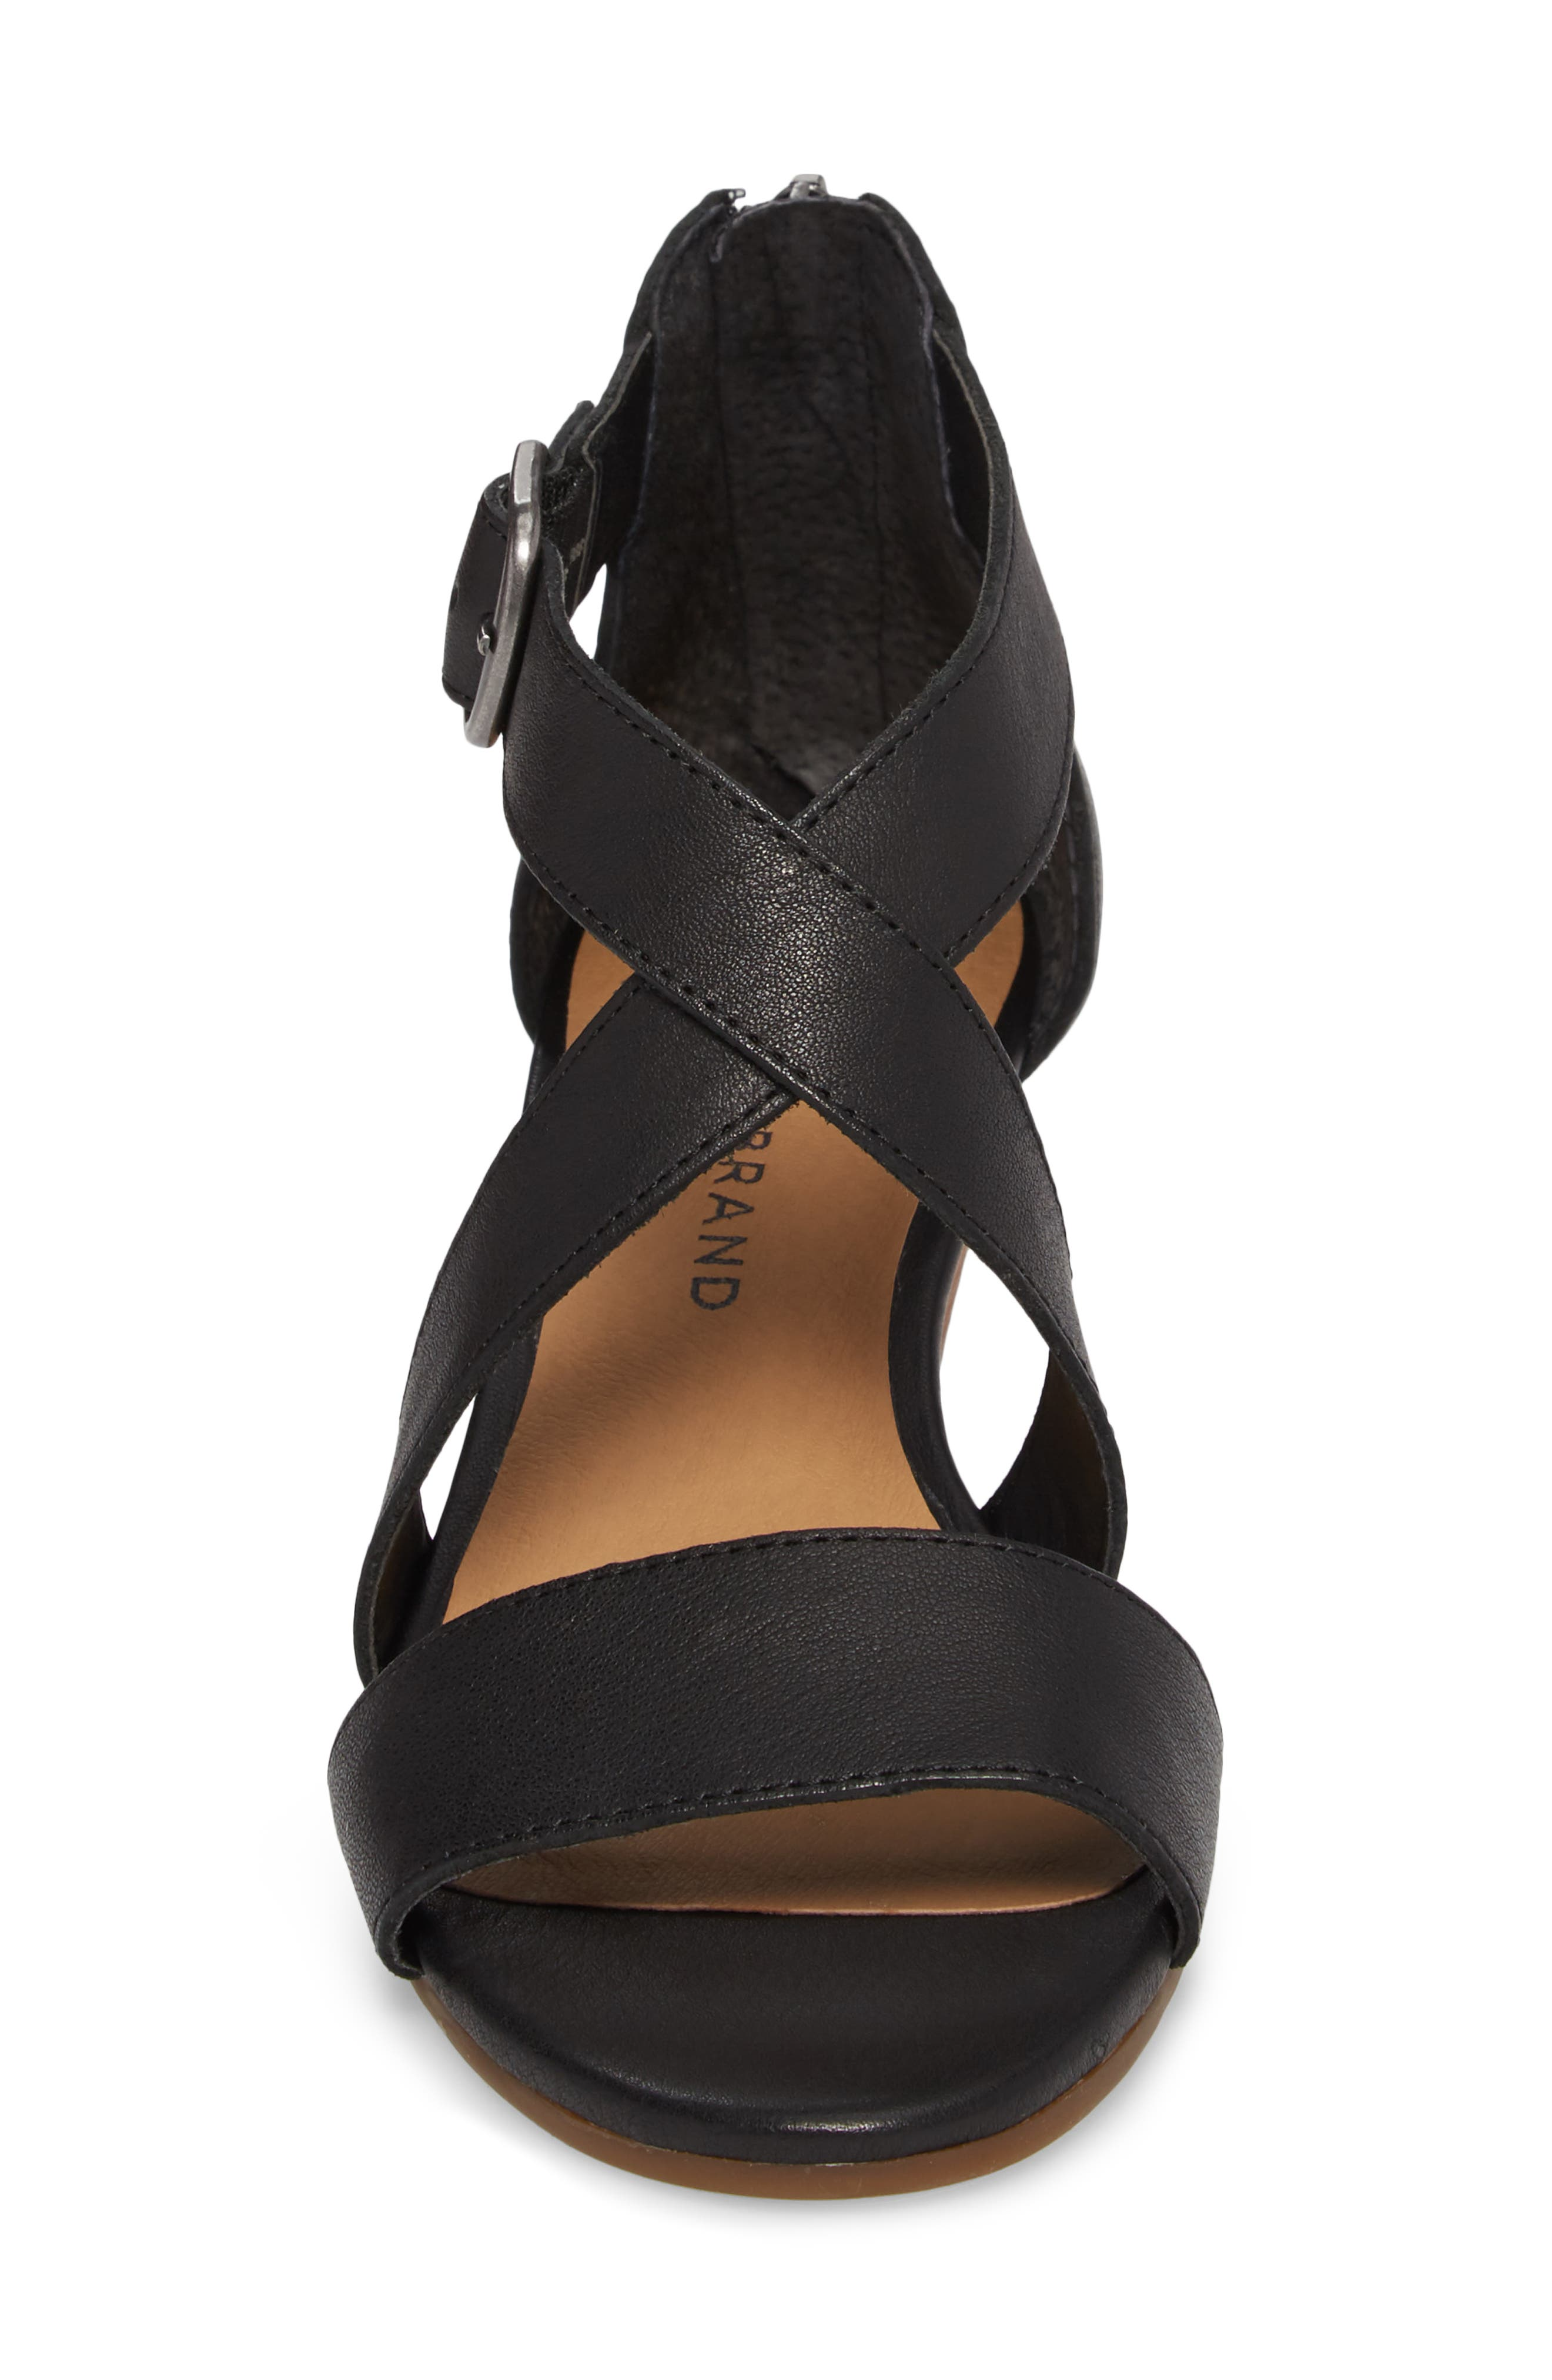 Jestah Wedge Sandal,                             Alternate thumbnail 4, color,                             Black Leather